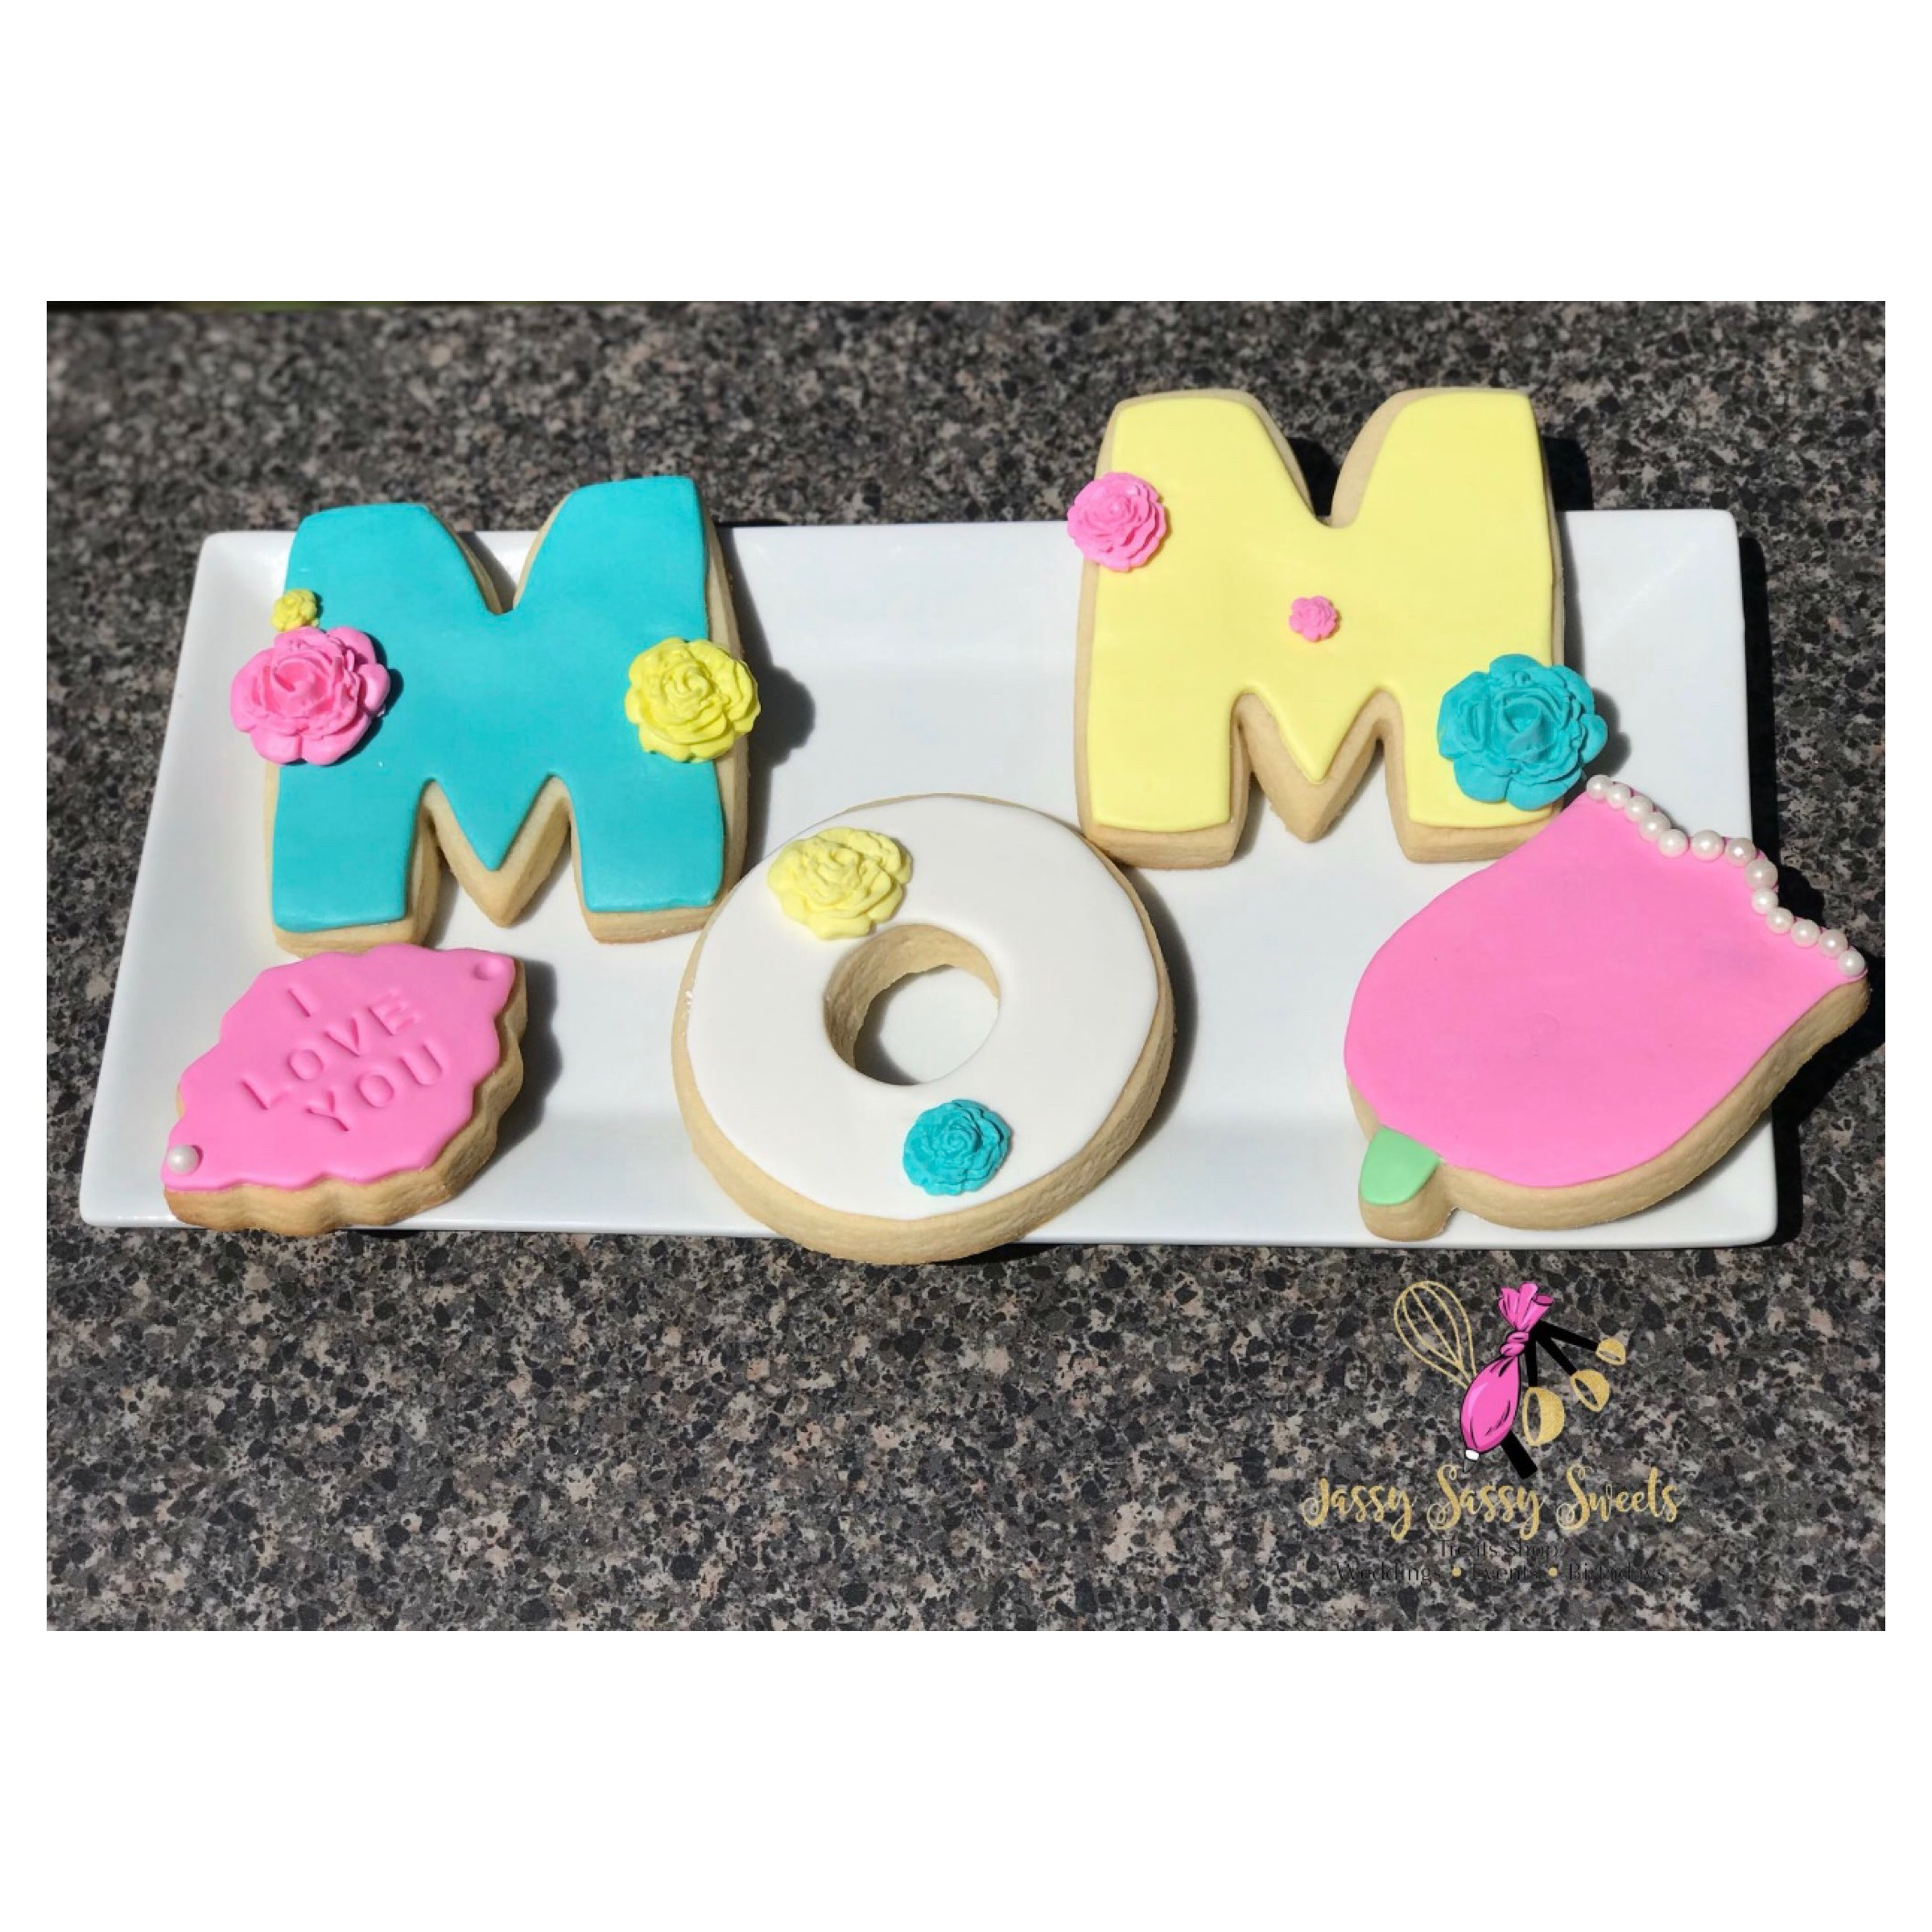 Mother's Day Cookies made by Jassy Sassy Sweets